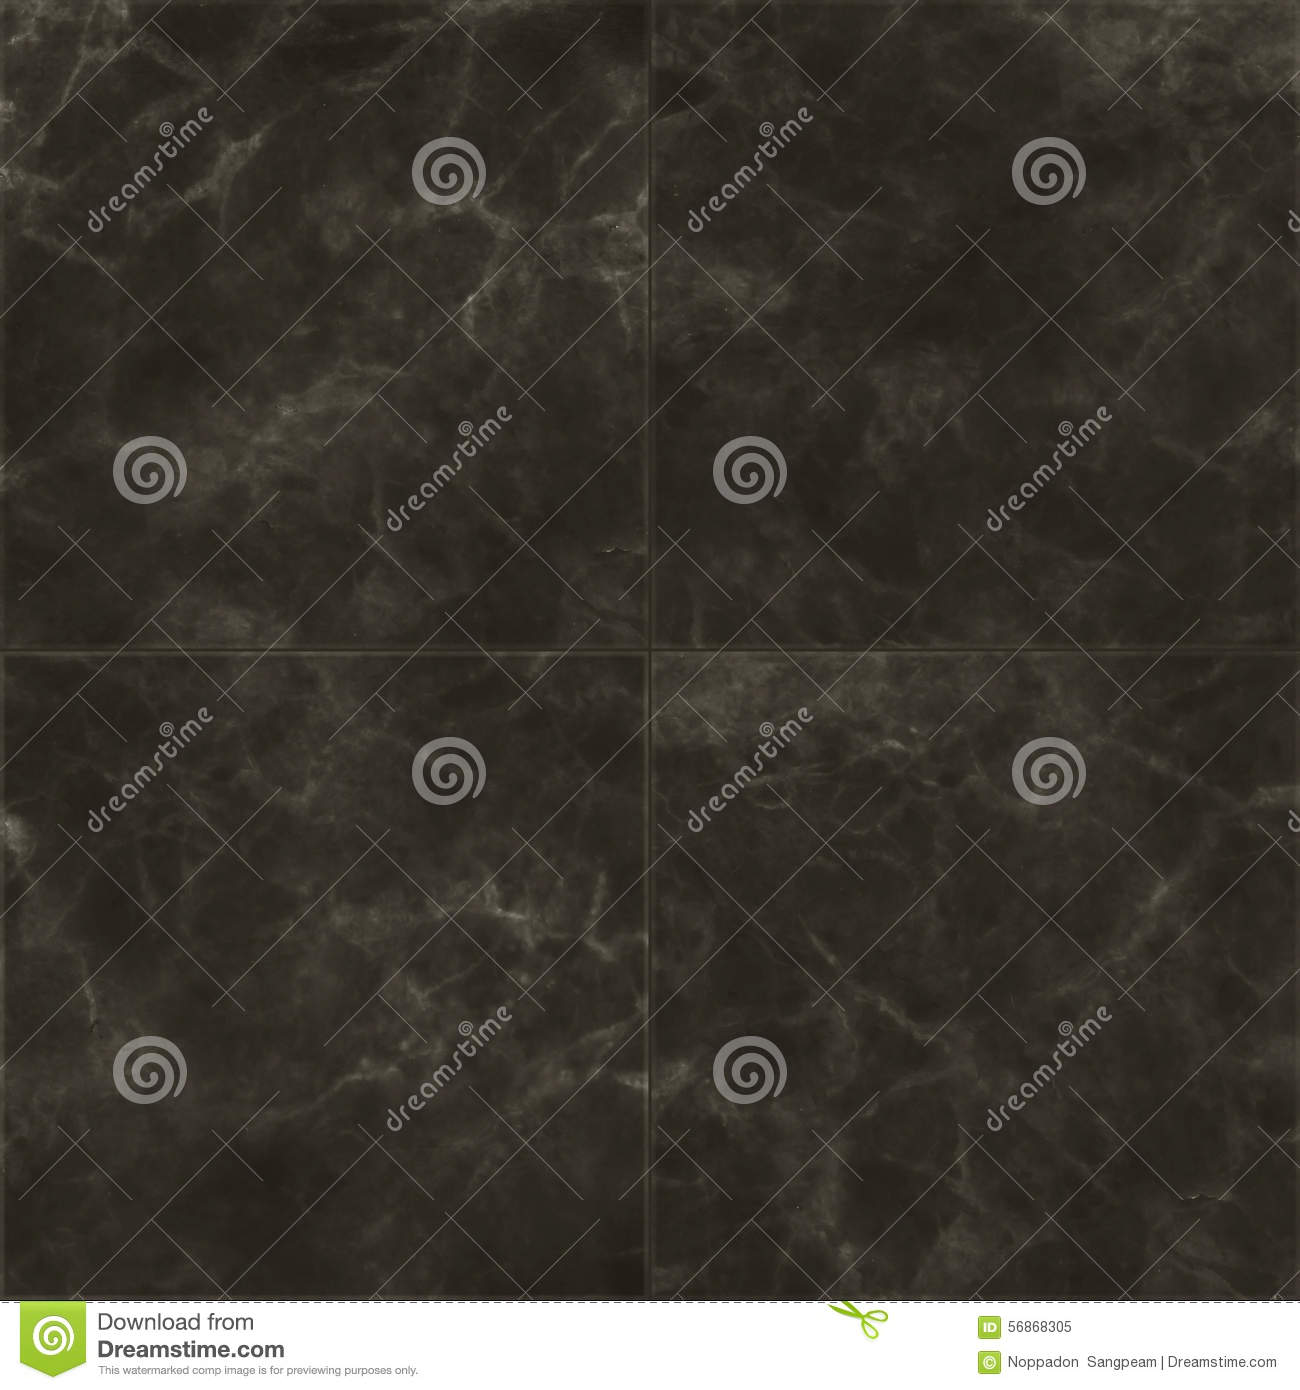 Marble Tiles Seamless Flooring Texture Detailed Structure Of In Natural Patterned For Background And Design